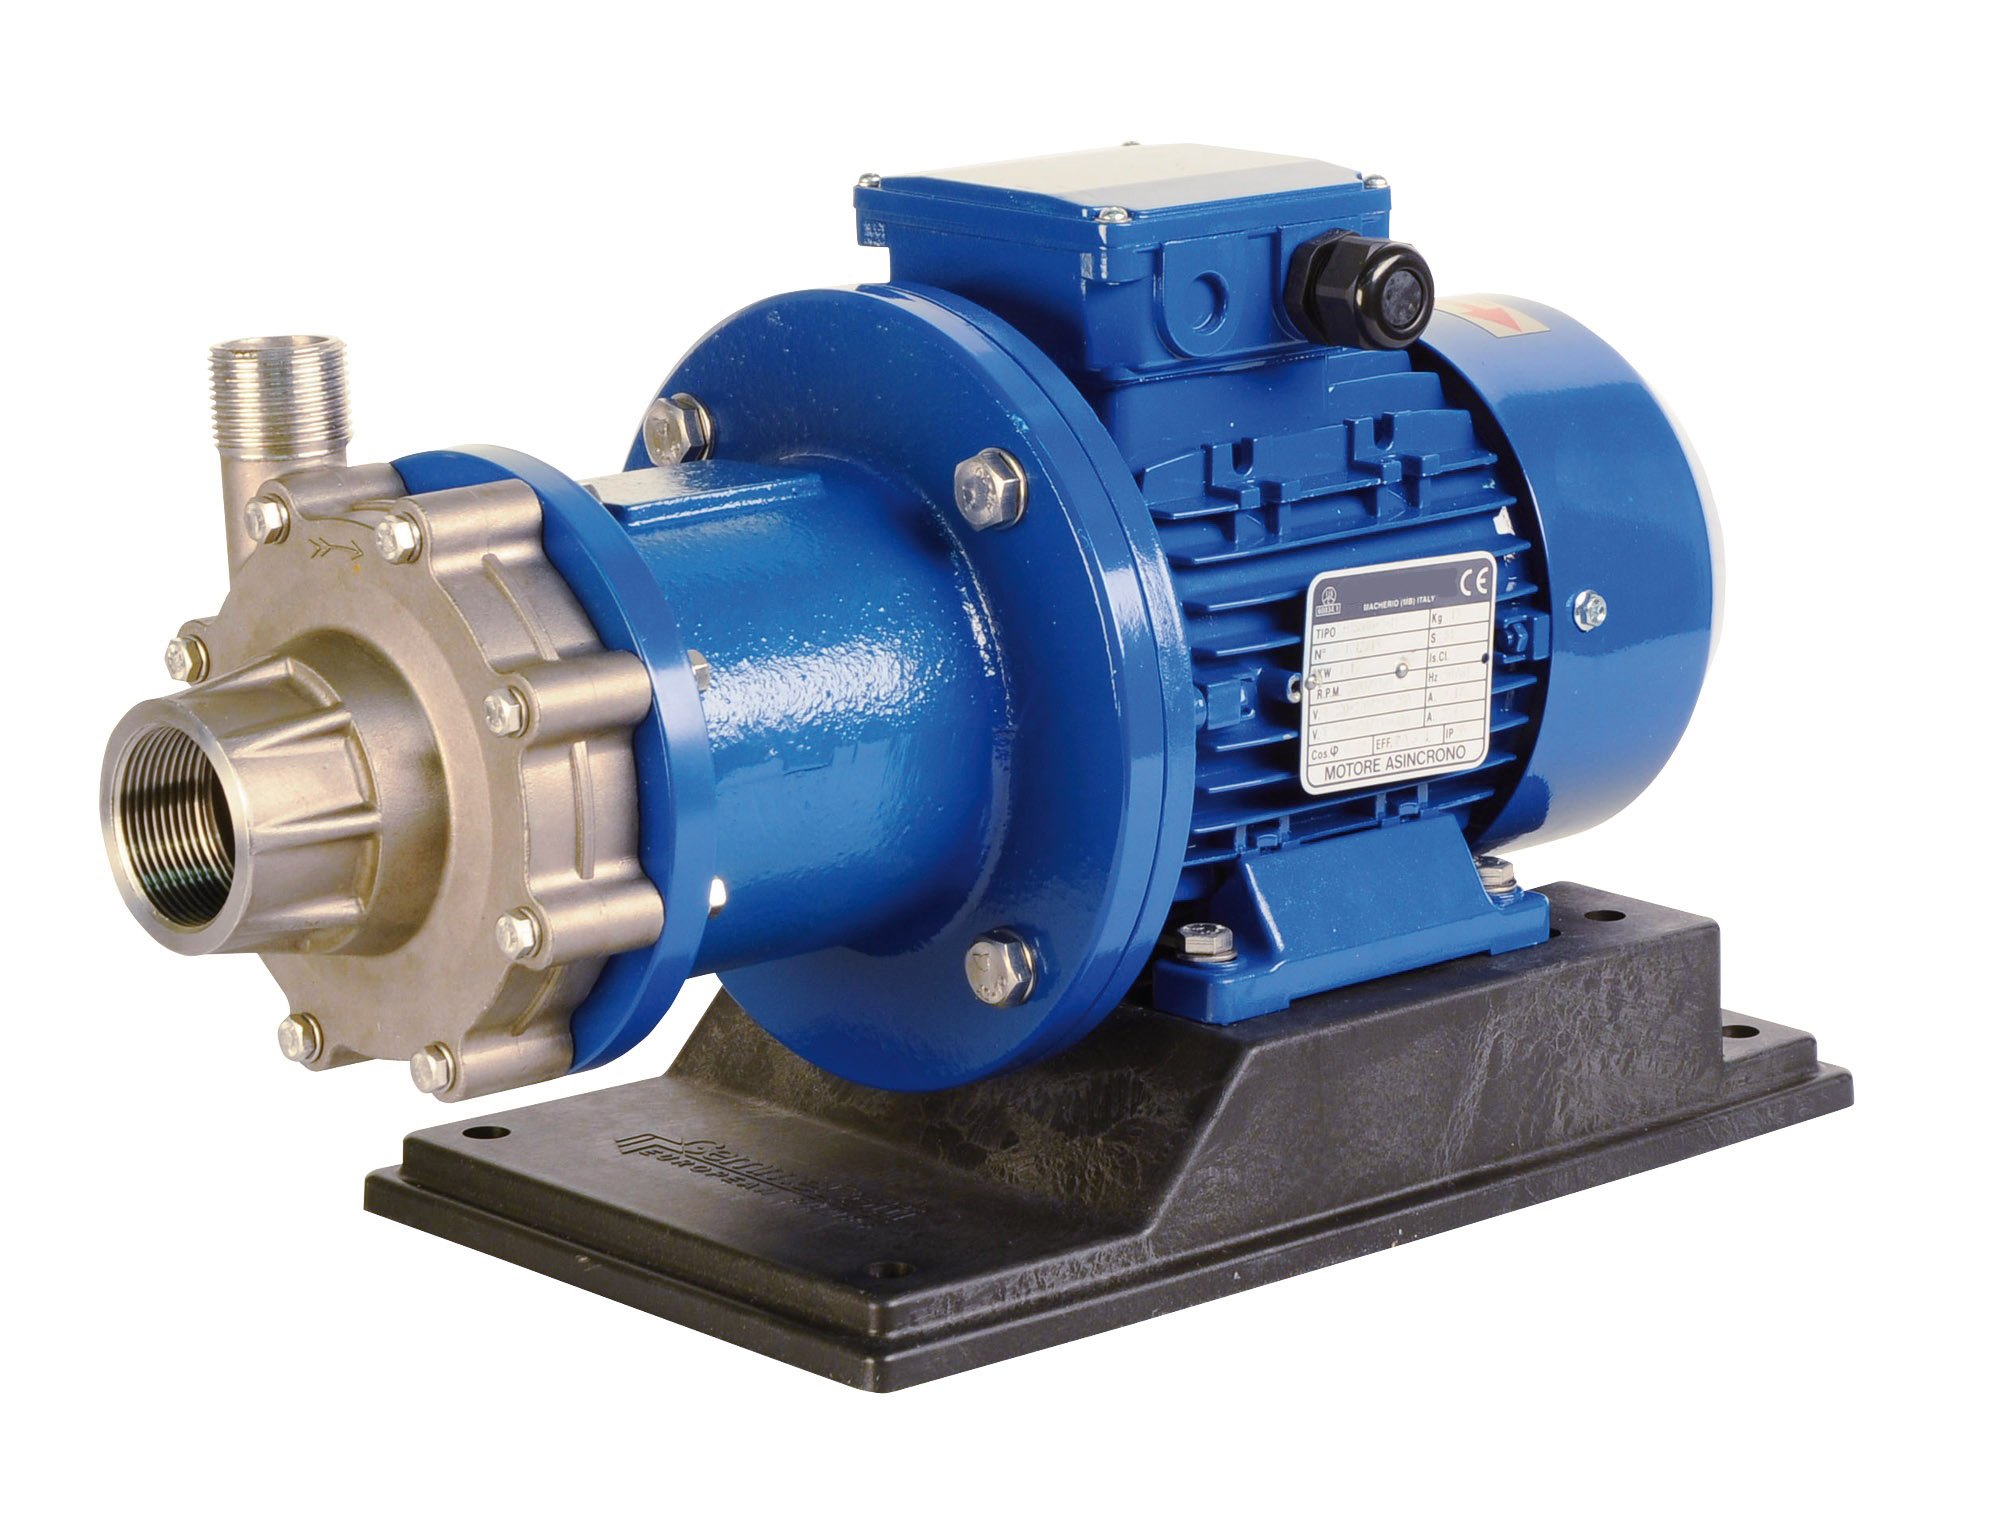 Gemme Cotti Magnetically Driven Centrifugal Pump